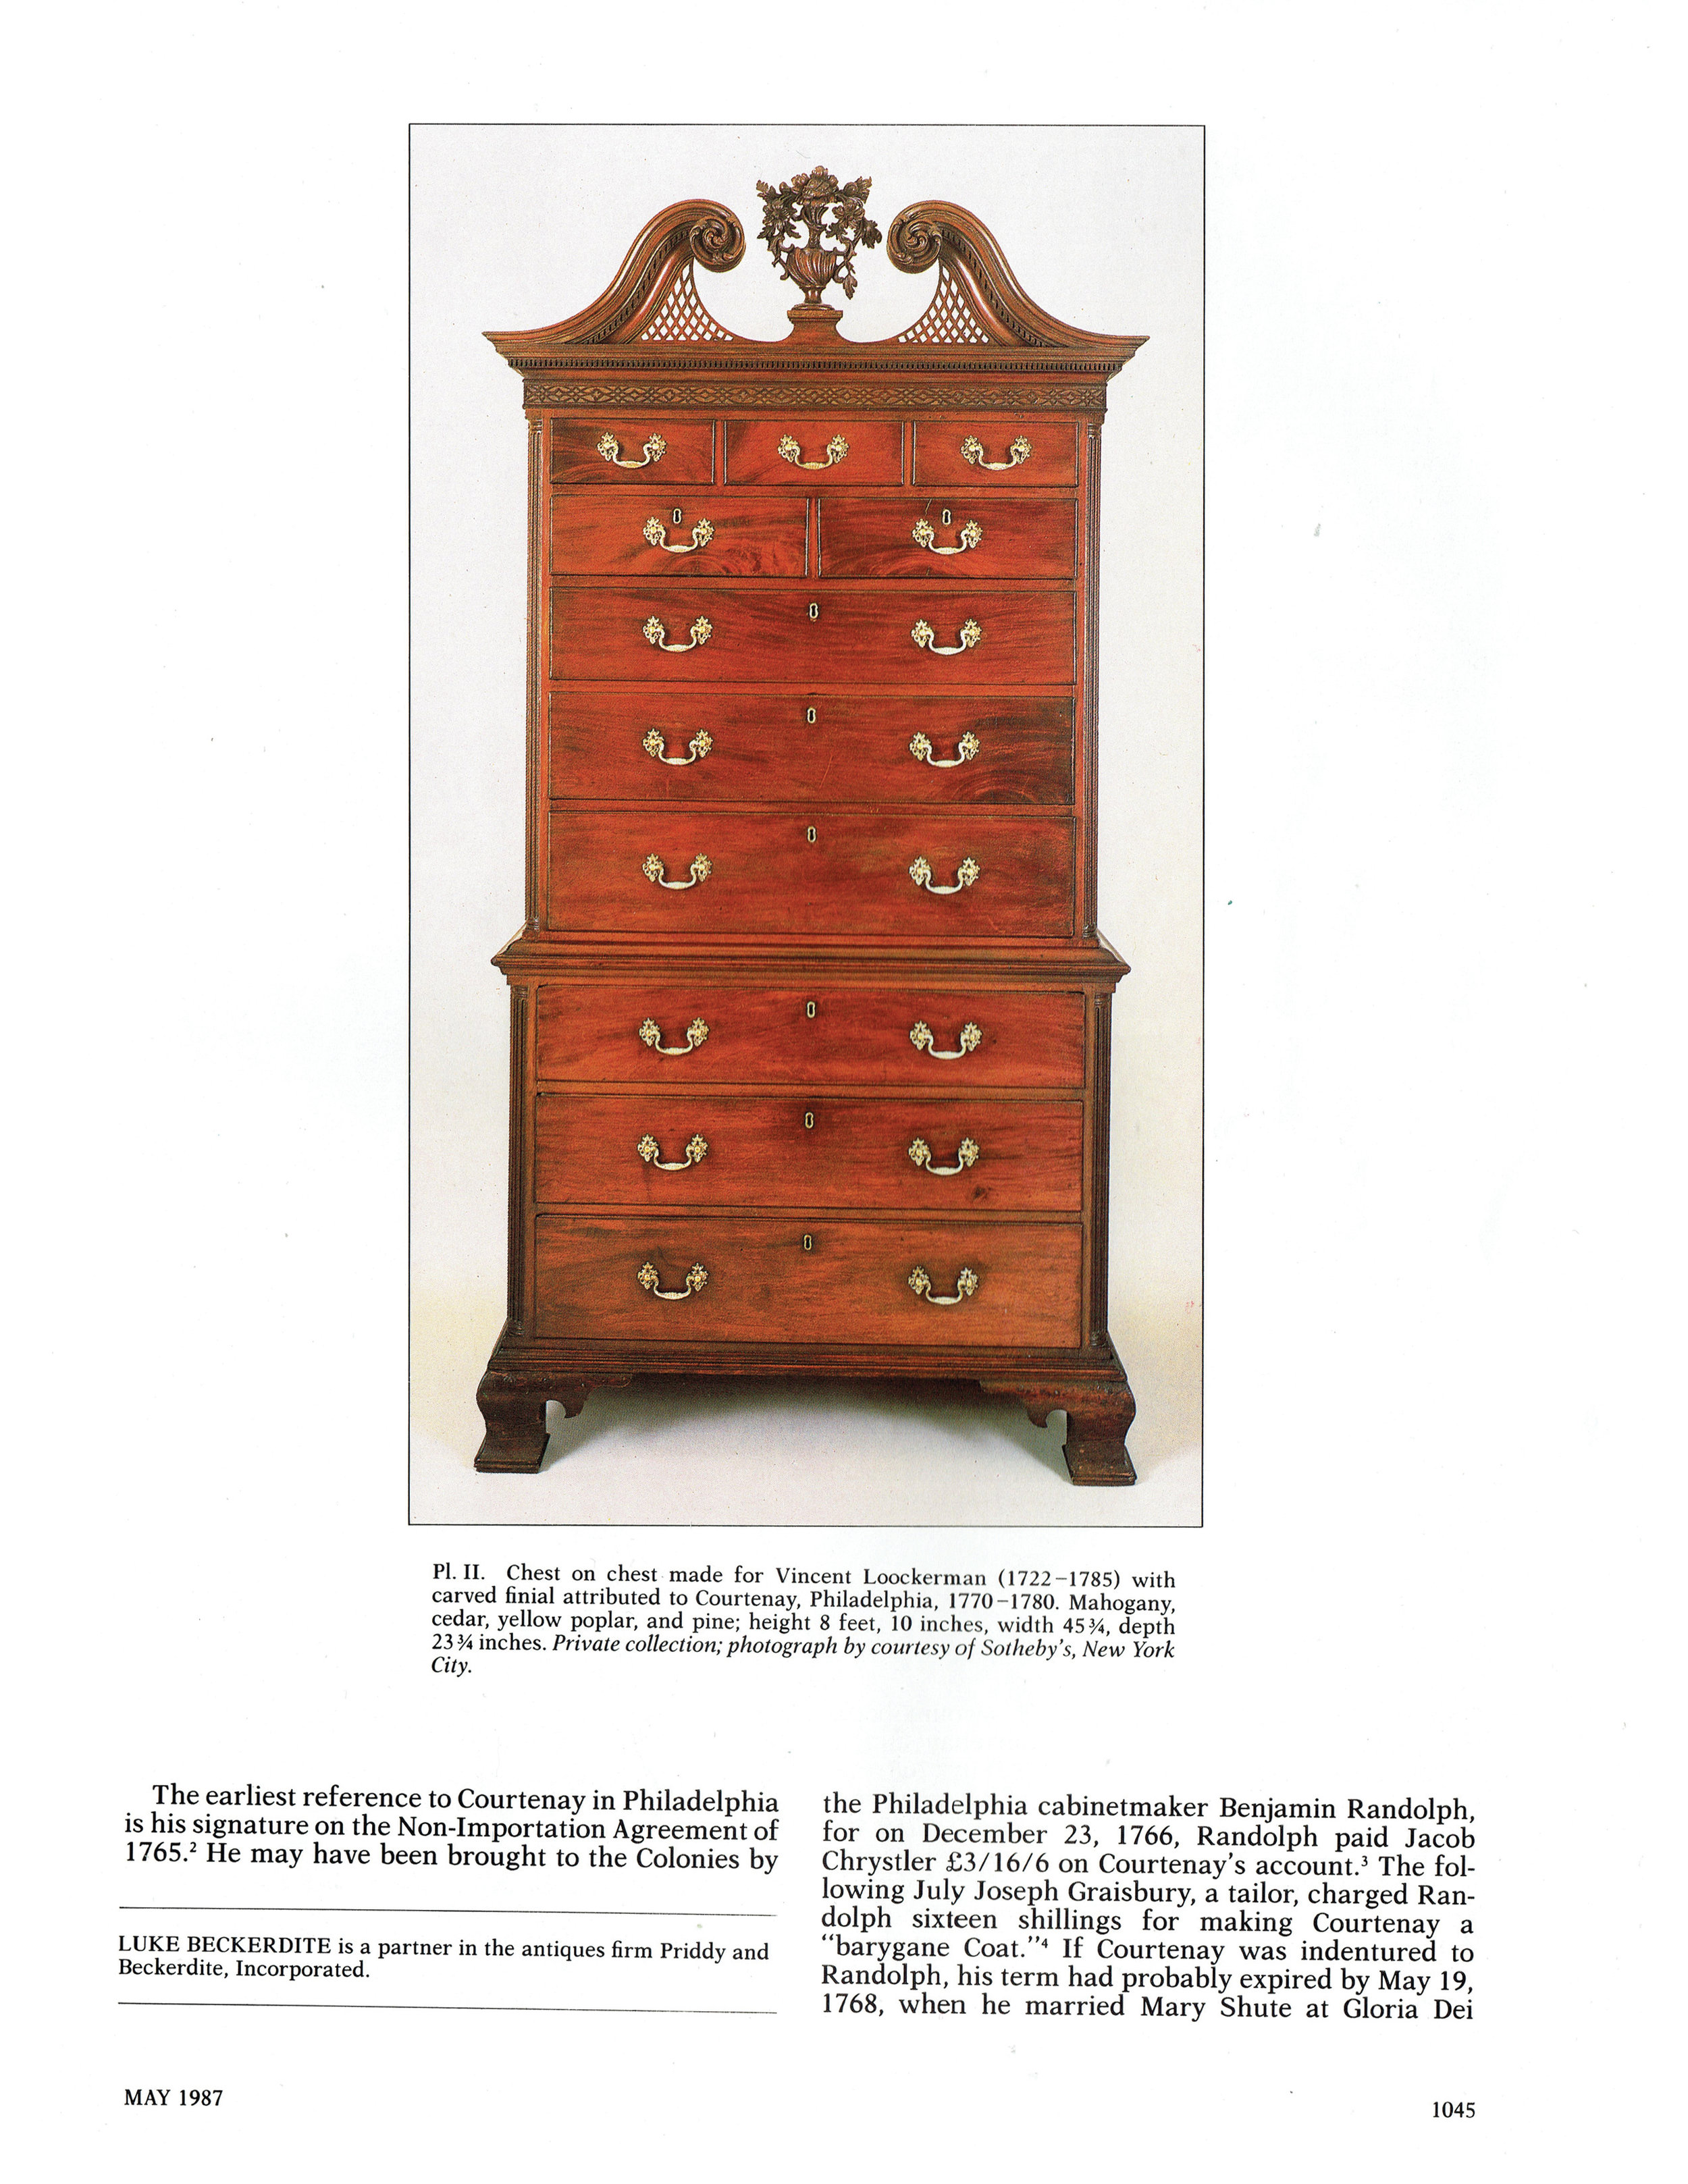 2018.01.16 CPF Antiques Article 03 - Pg1045.jpg